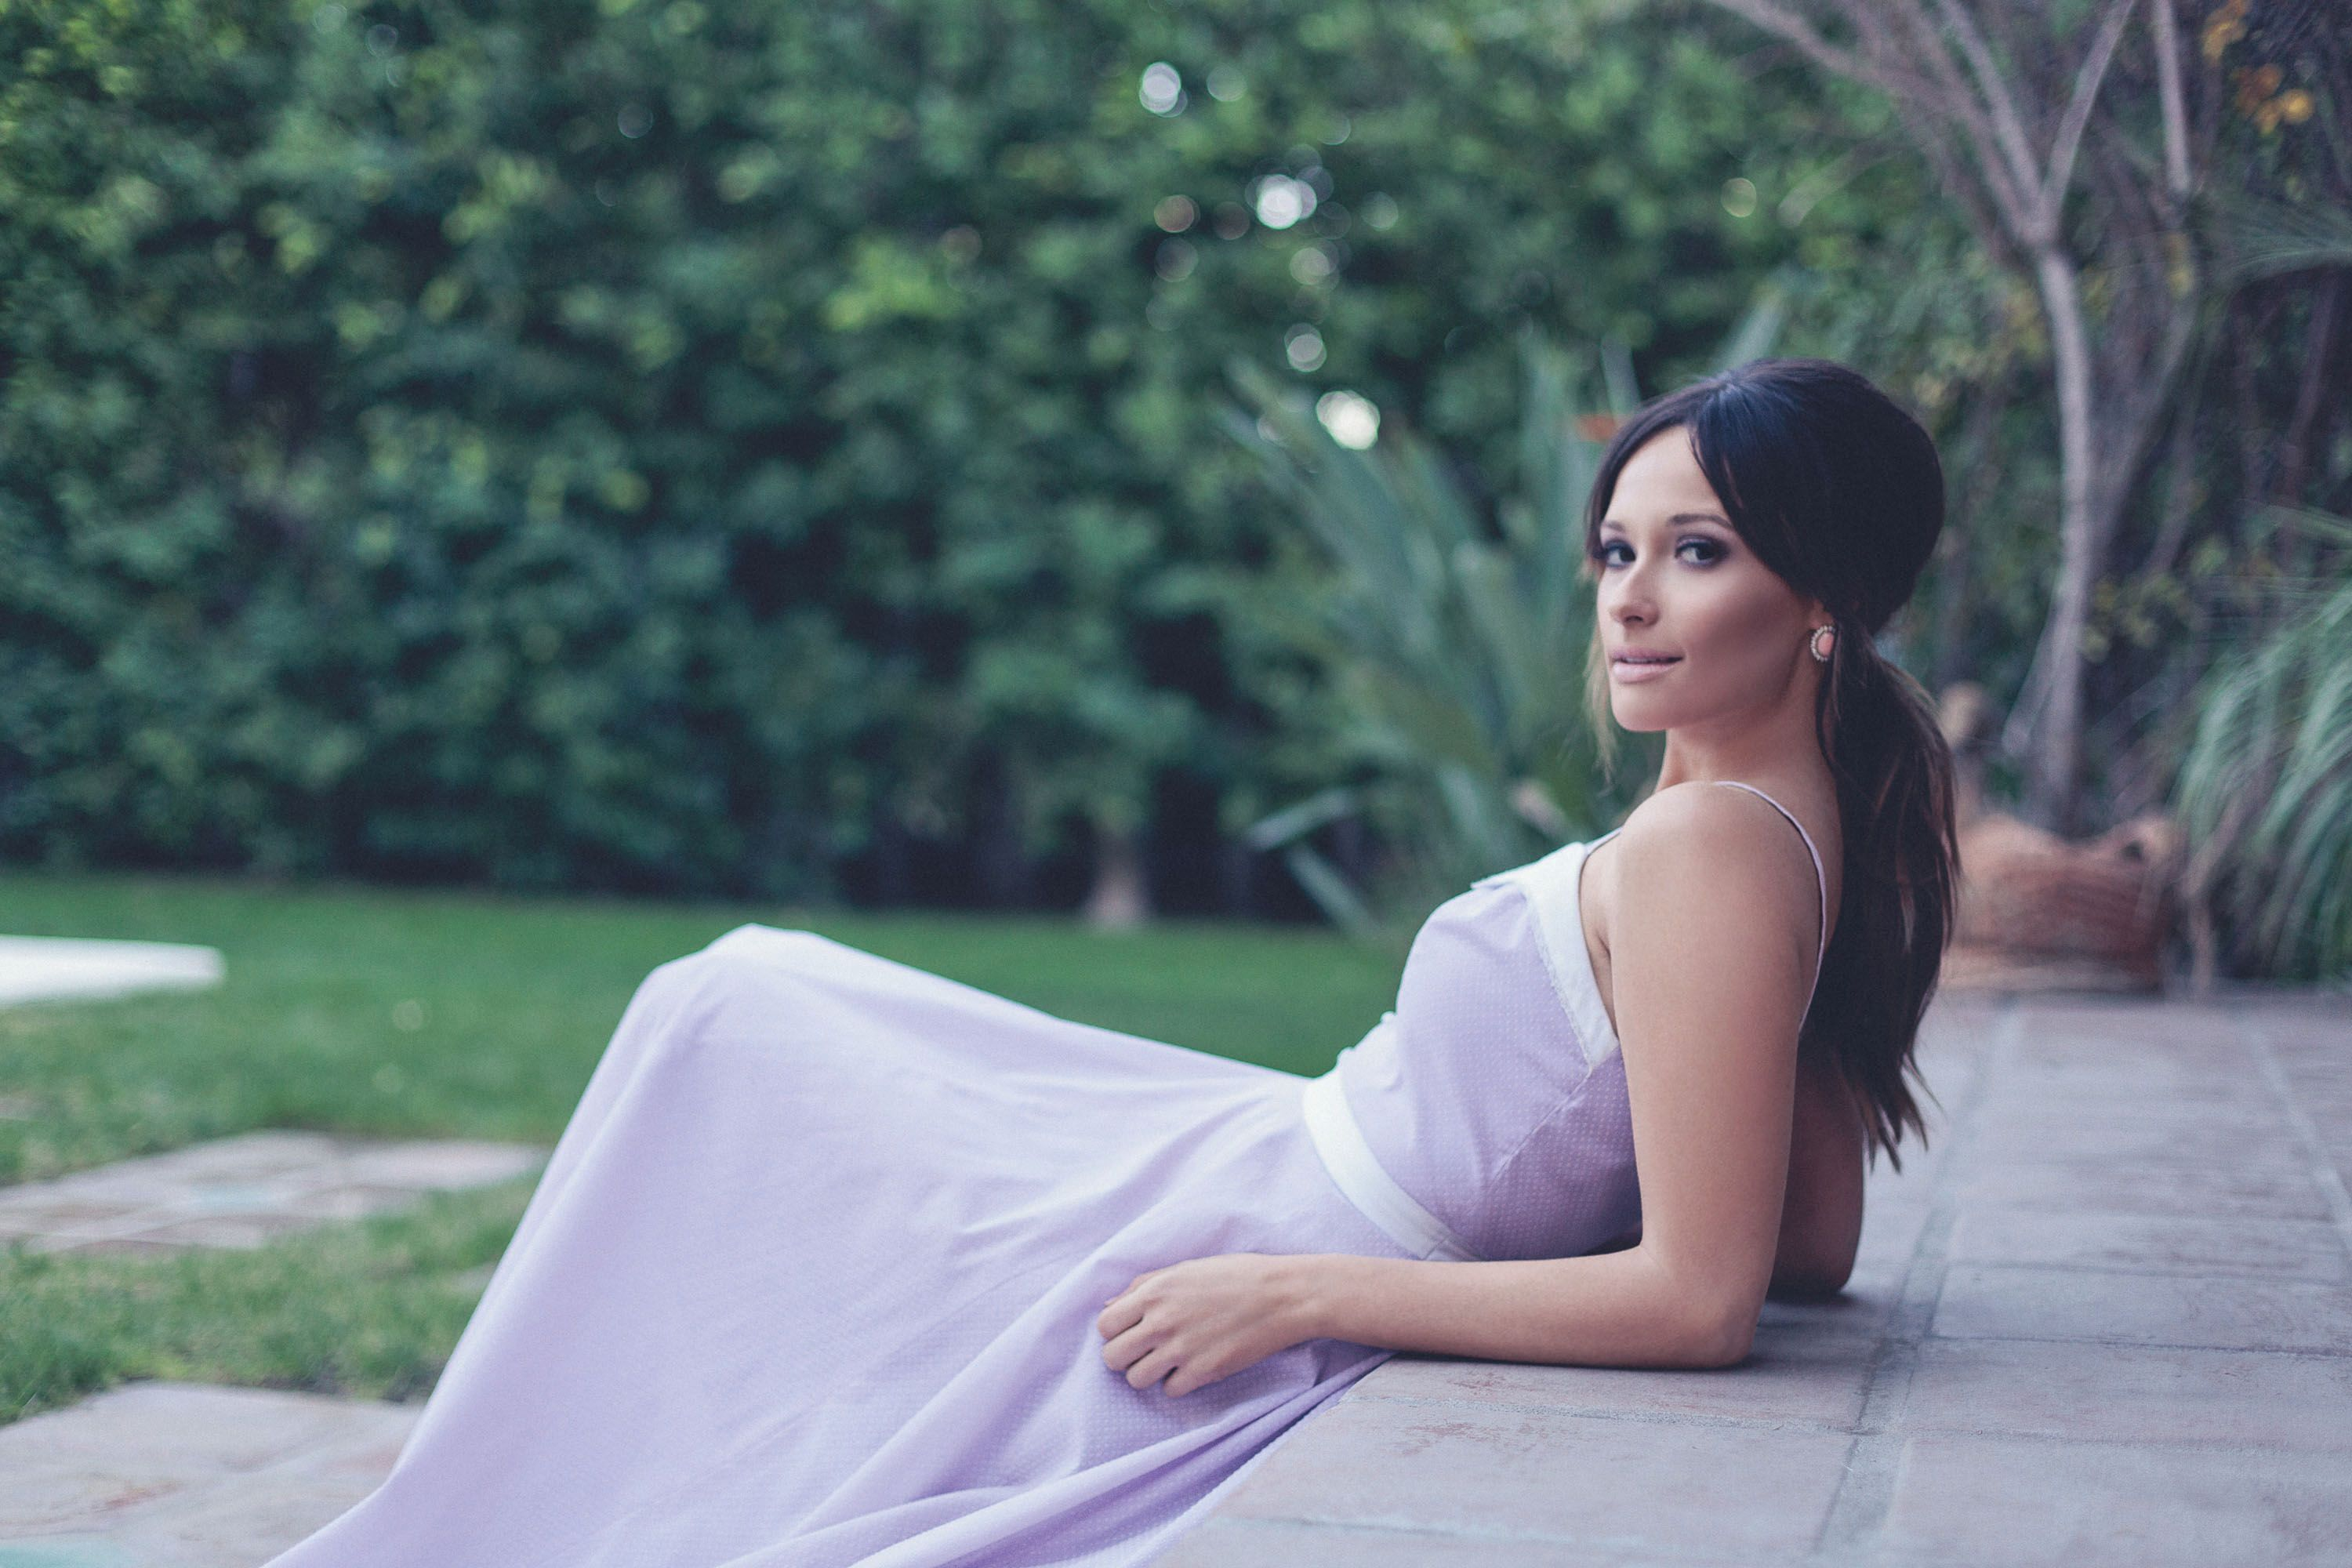 Kacey Musgraves: The Subversive Country Artistry Of Kacey Musgraves